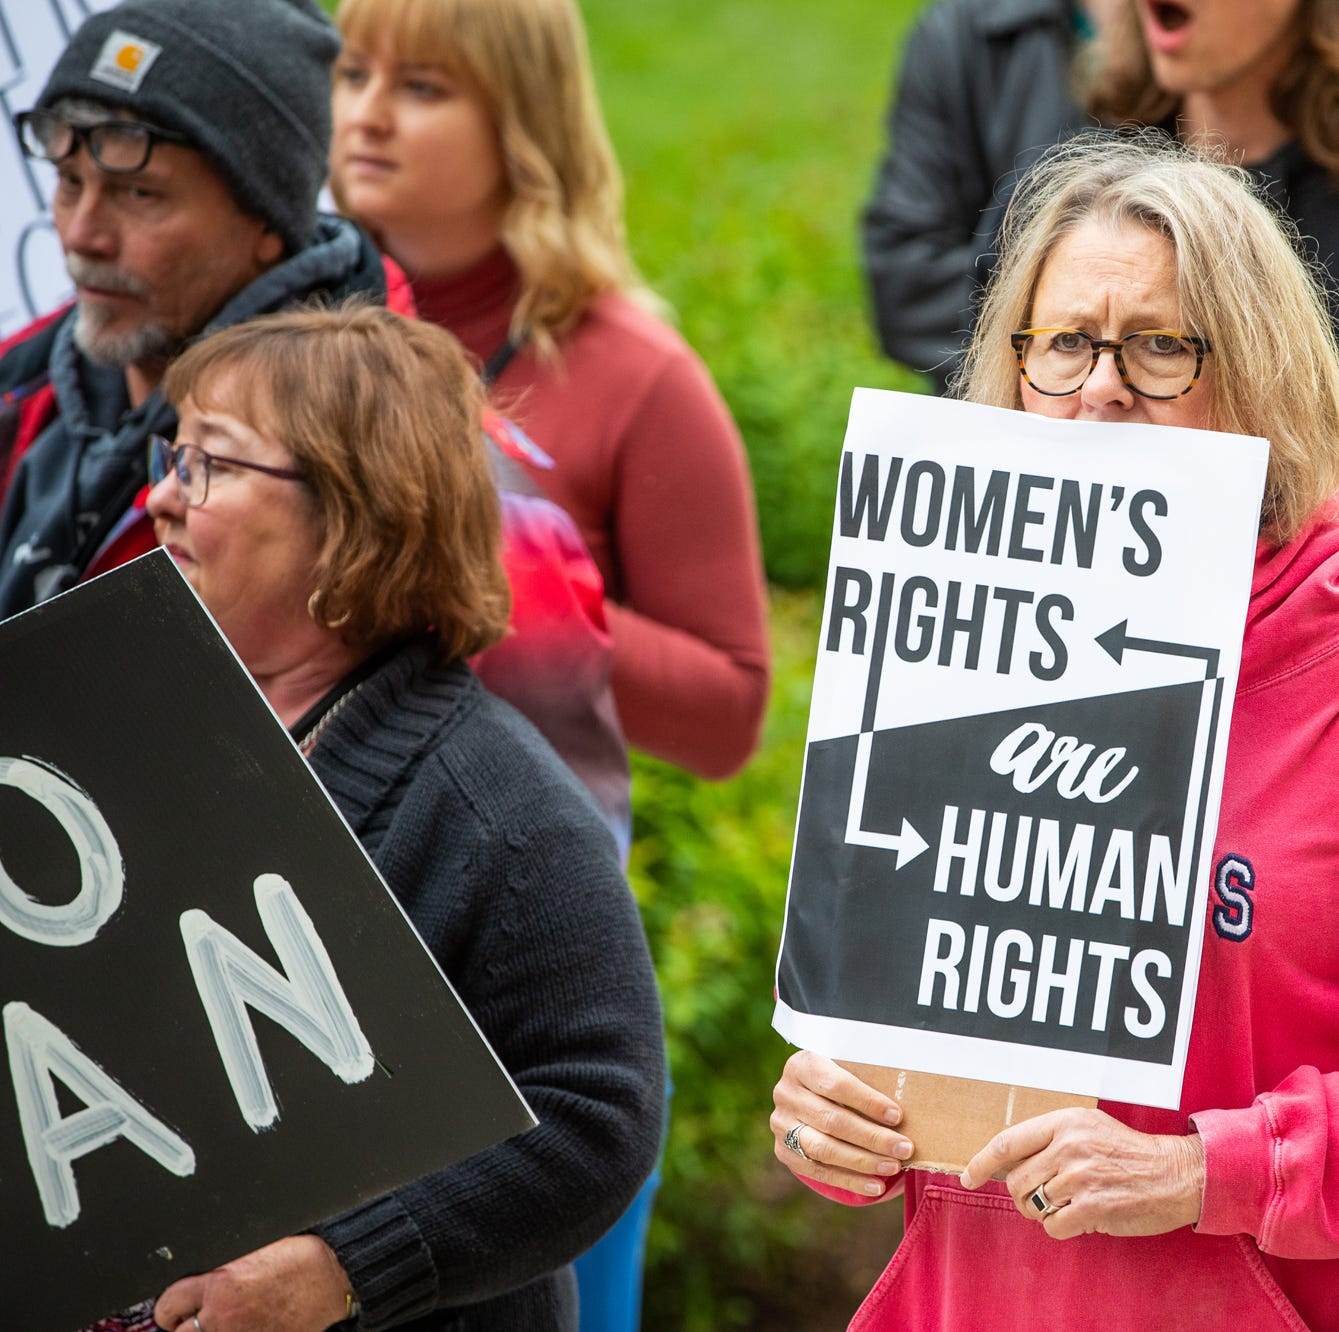 Esther Cepeda: Pro-life stance too often disregards the mothers of fetuses